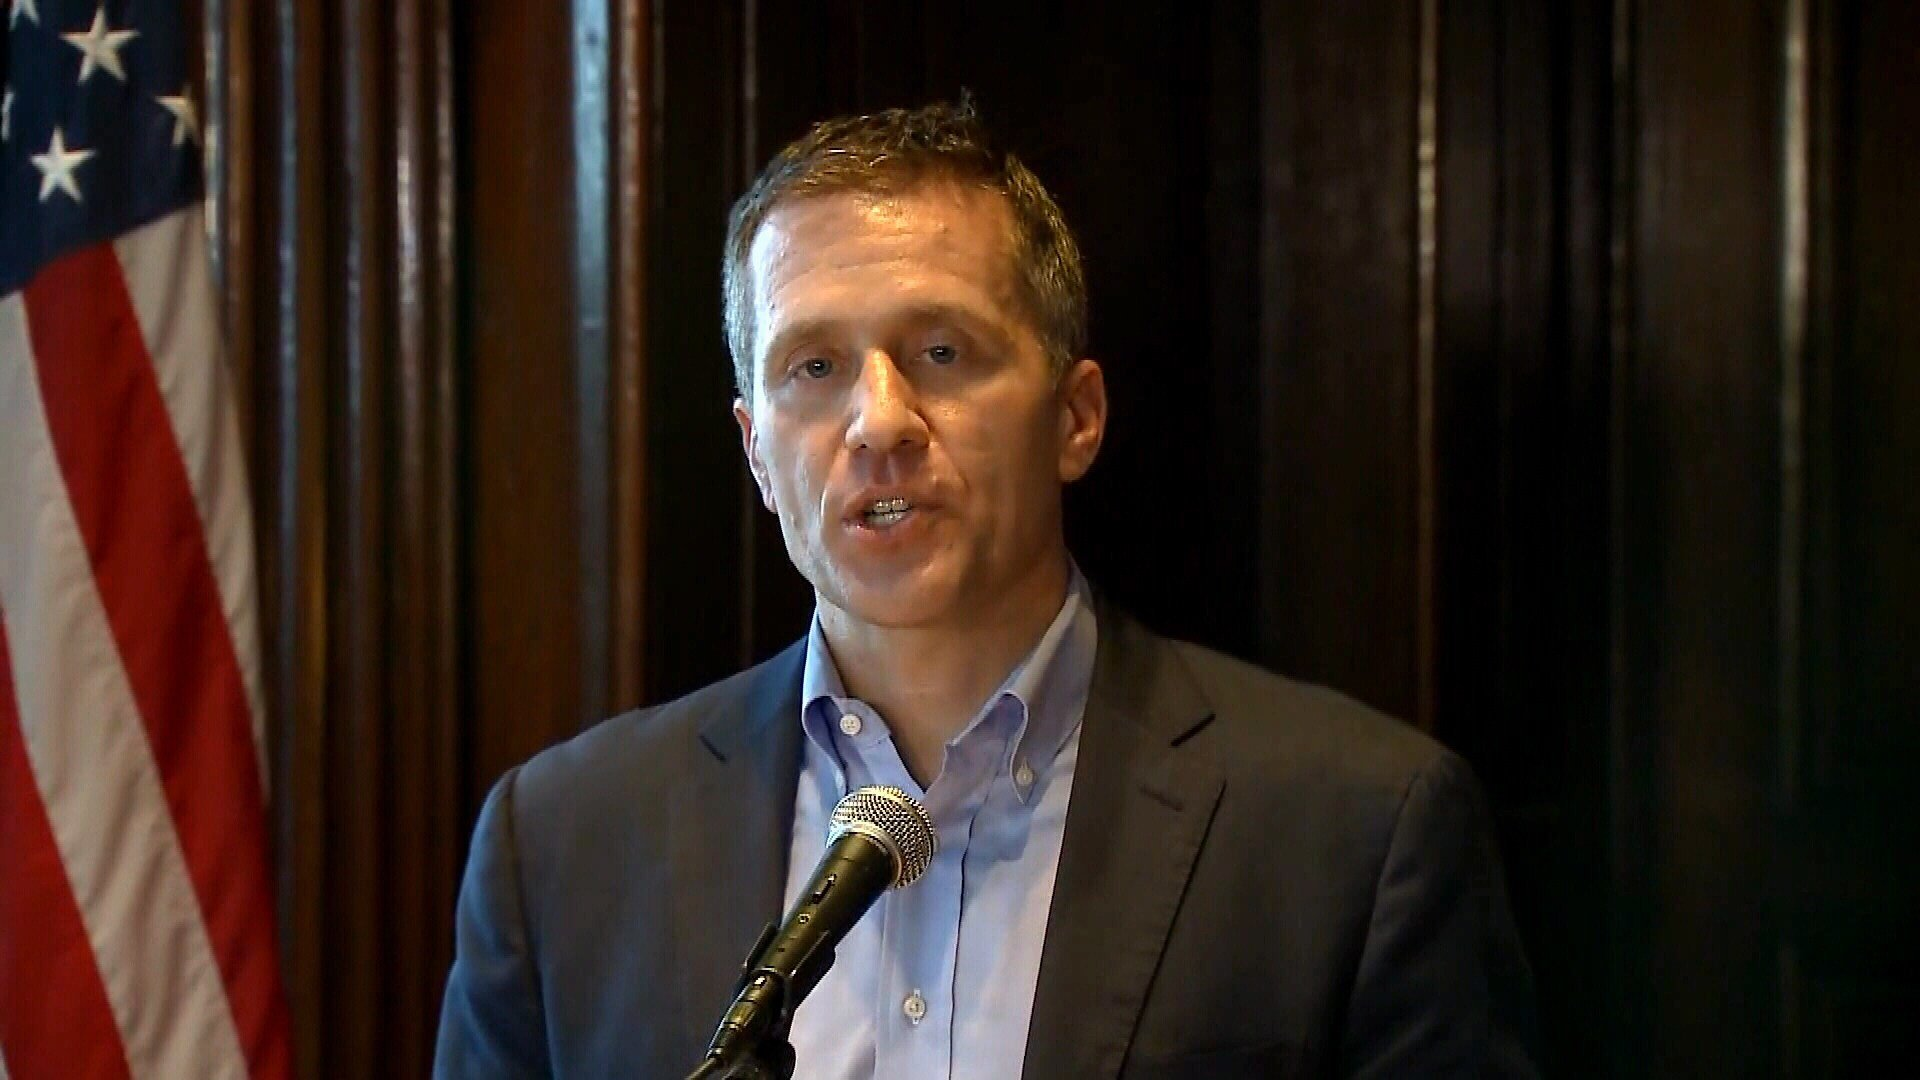 Missouri House Special Investigative Committee to release addendum to Greitens report